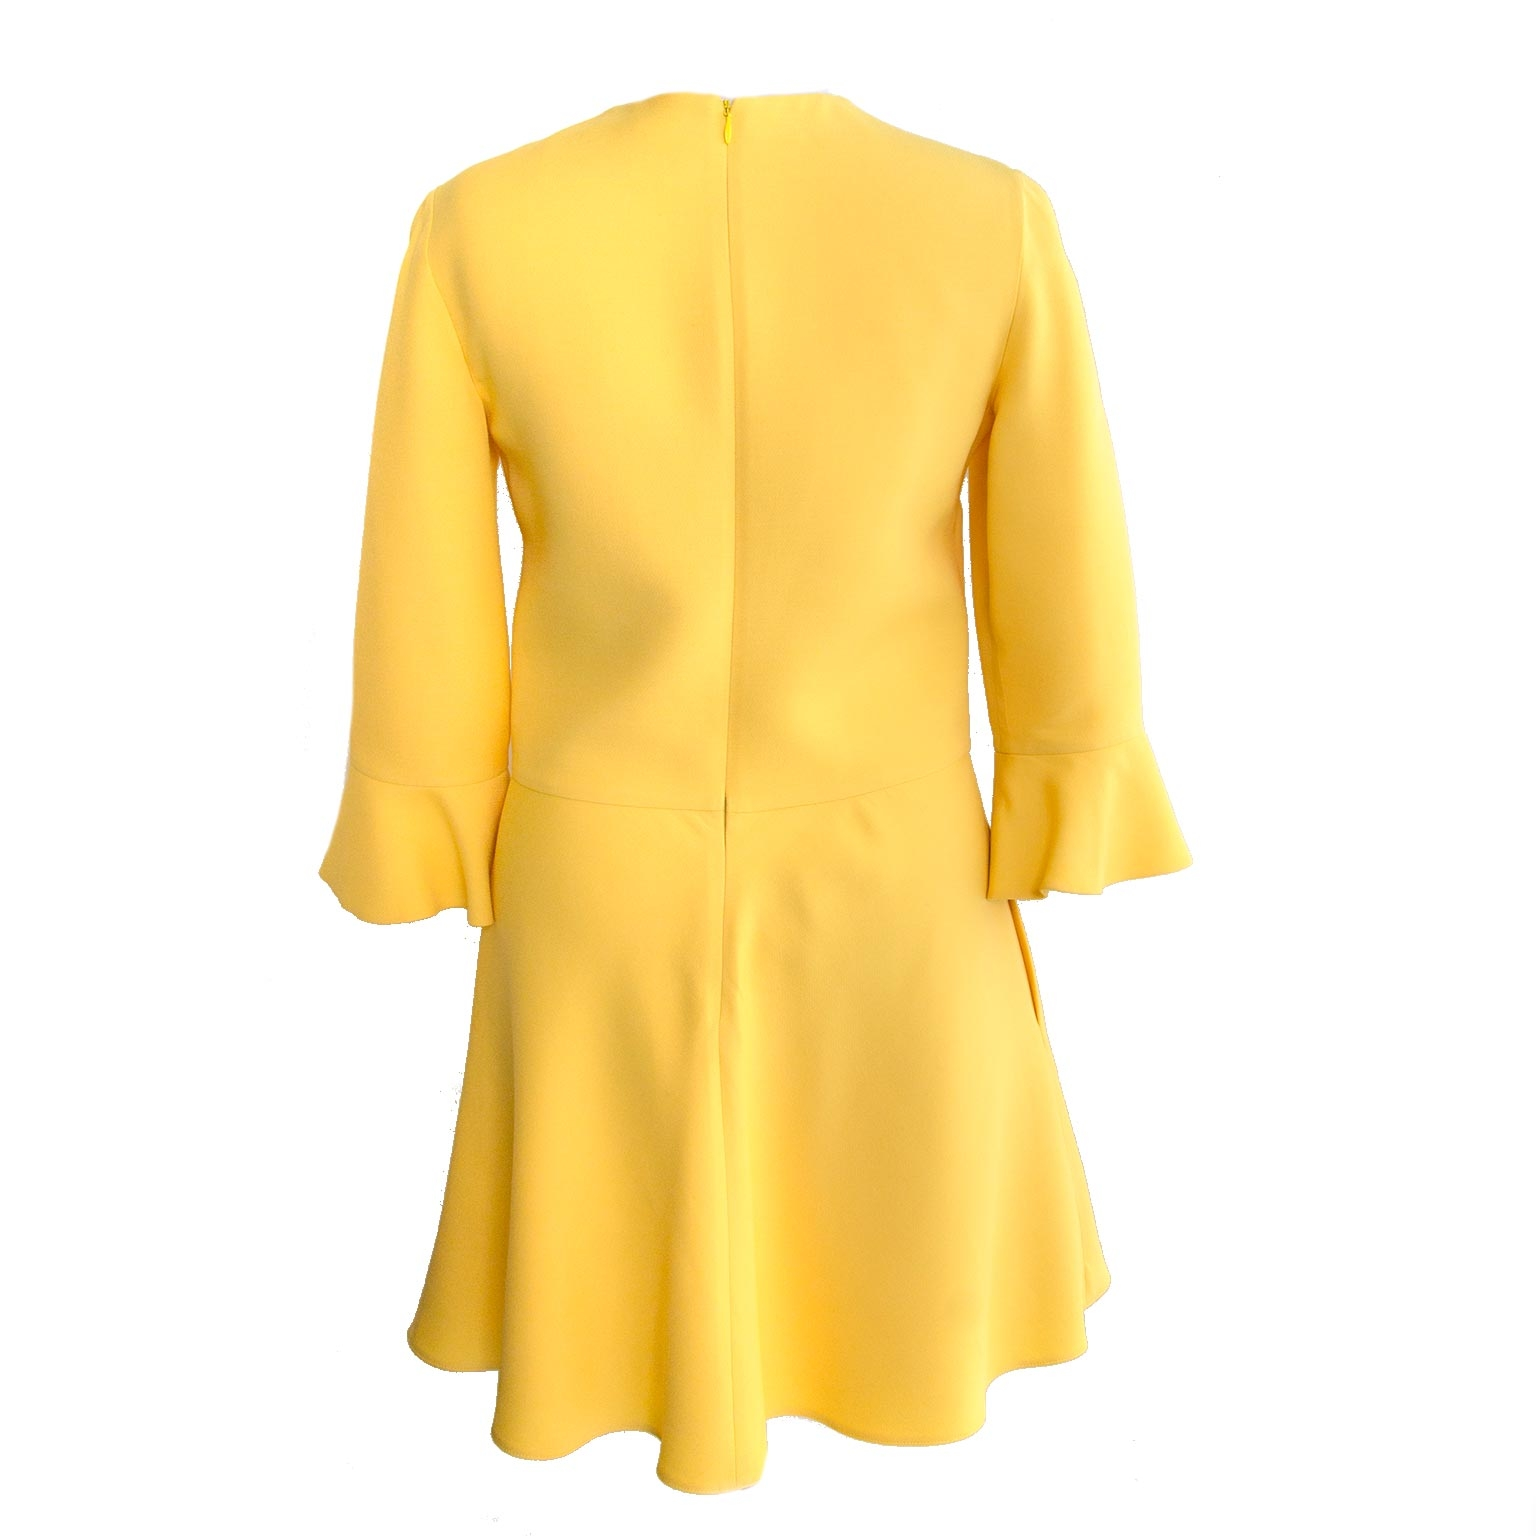 buy authentic valentino yellow dress at labellov vintage fashion webshop belgium